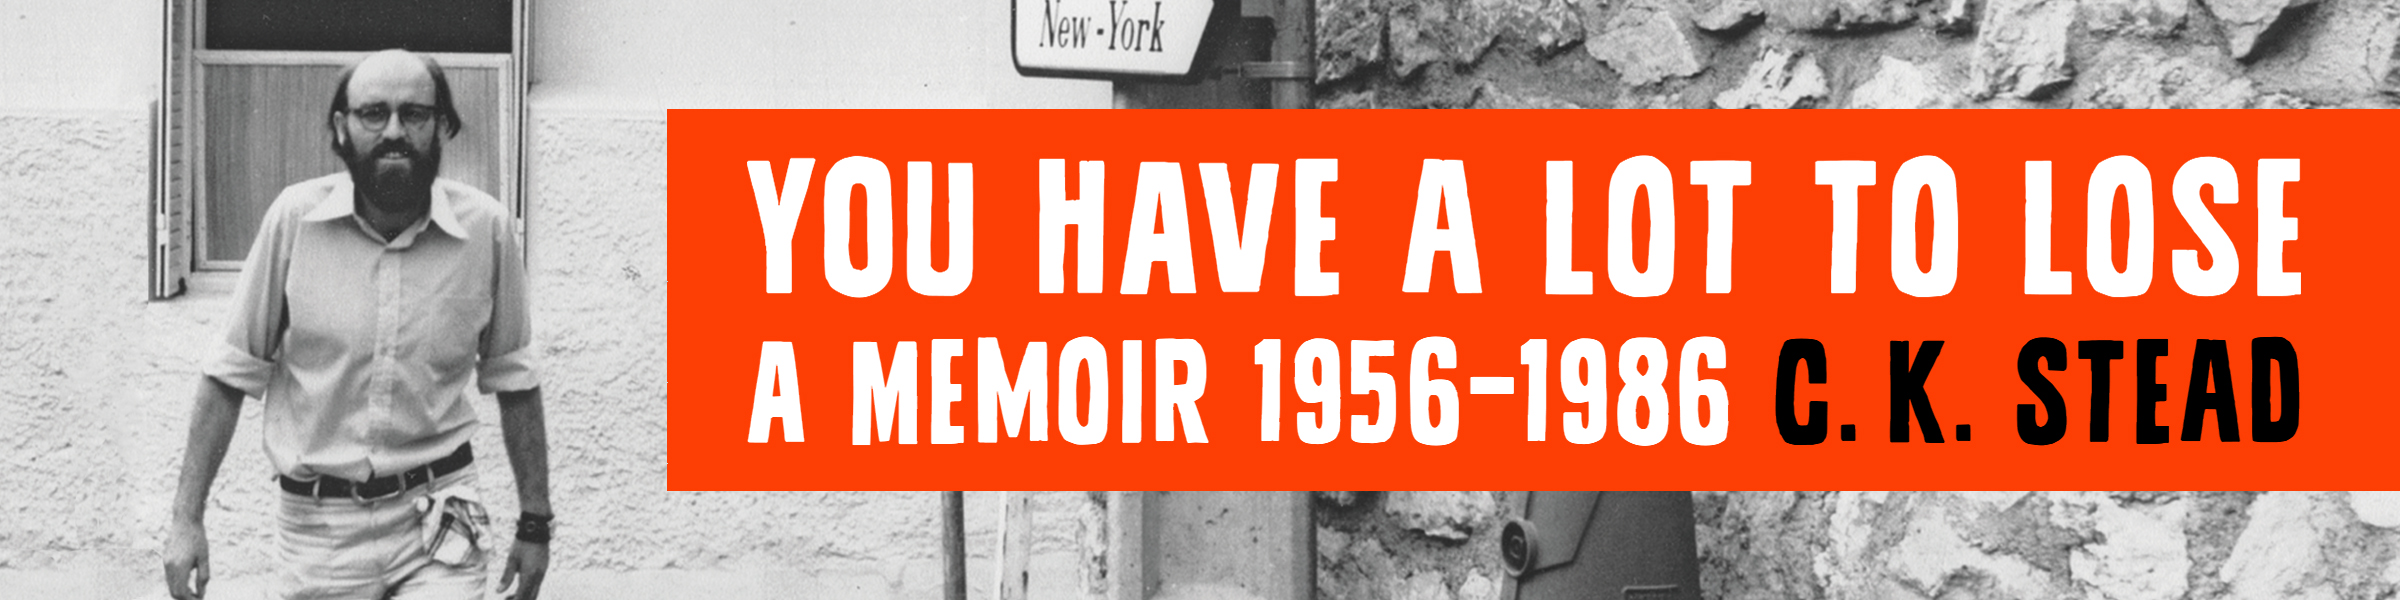 YOU HAVE A LOT TO LOSE: A MEMOIR, 1956–1986 C. K. Stead